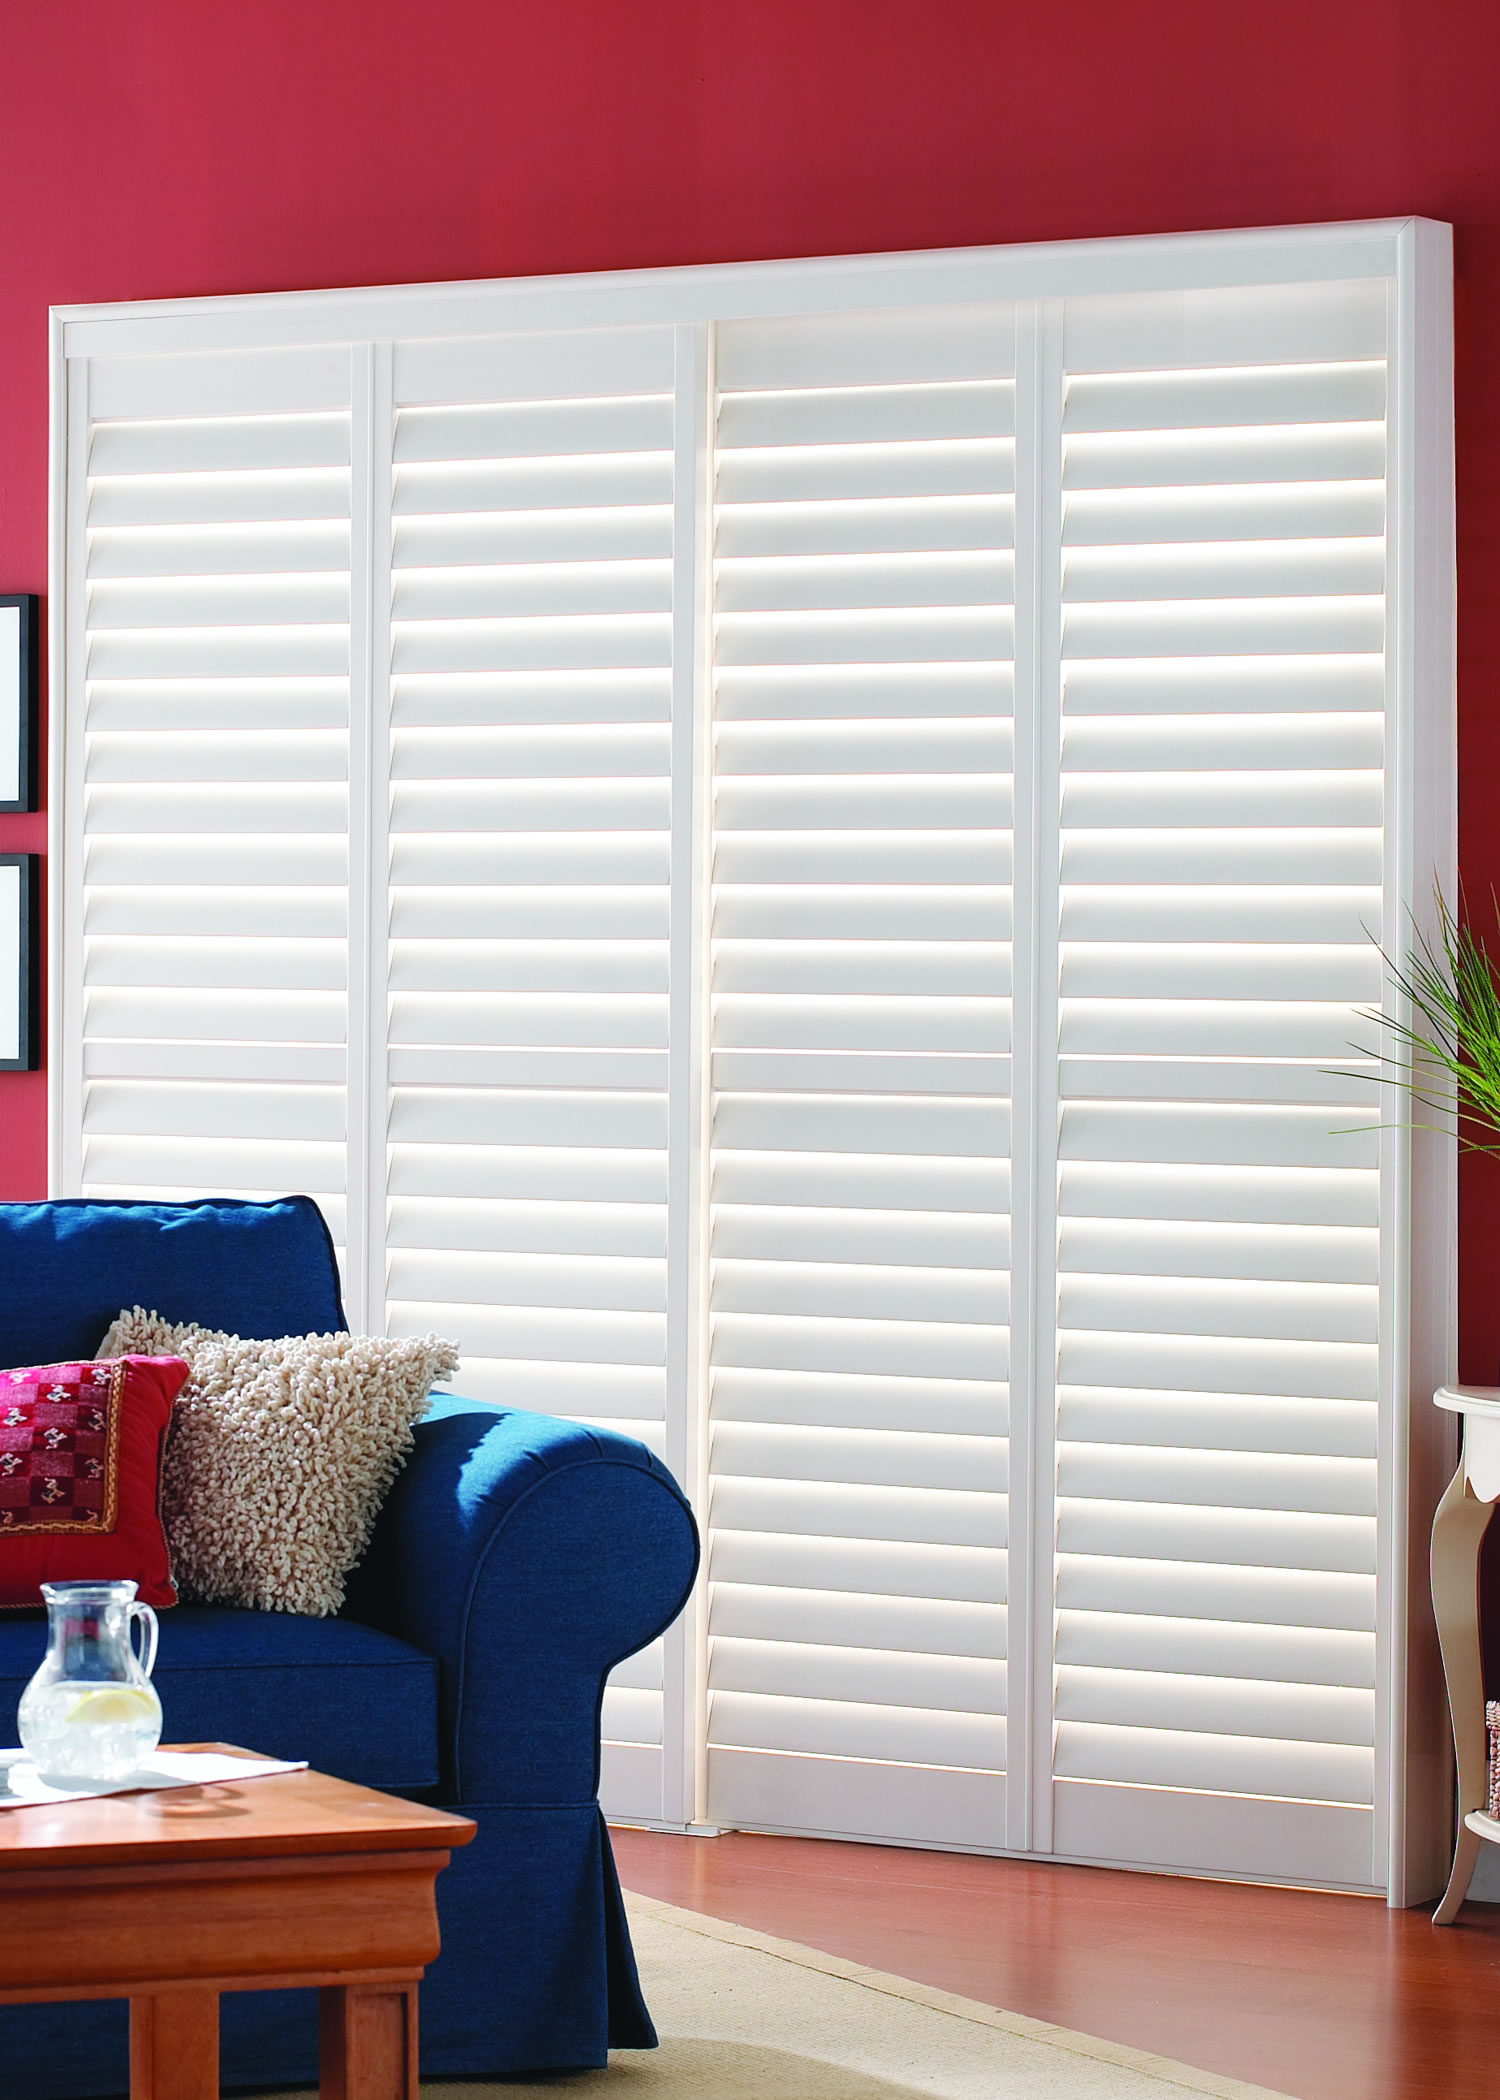 Faux Wood Shutters Composite Shutters Buyhomeblinds Com